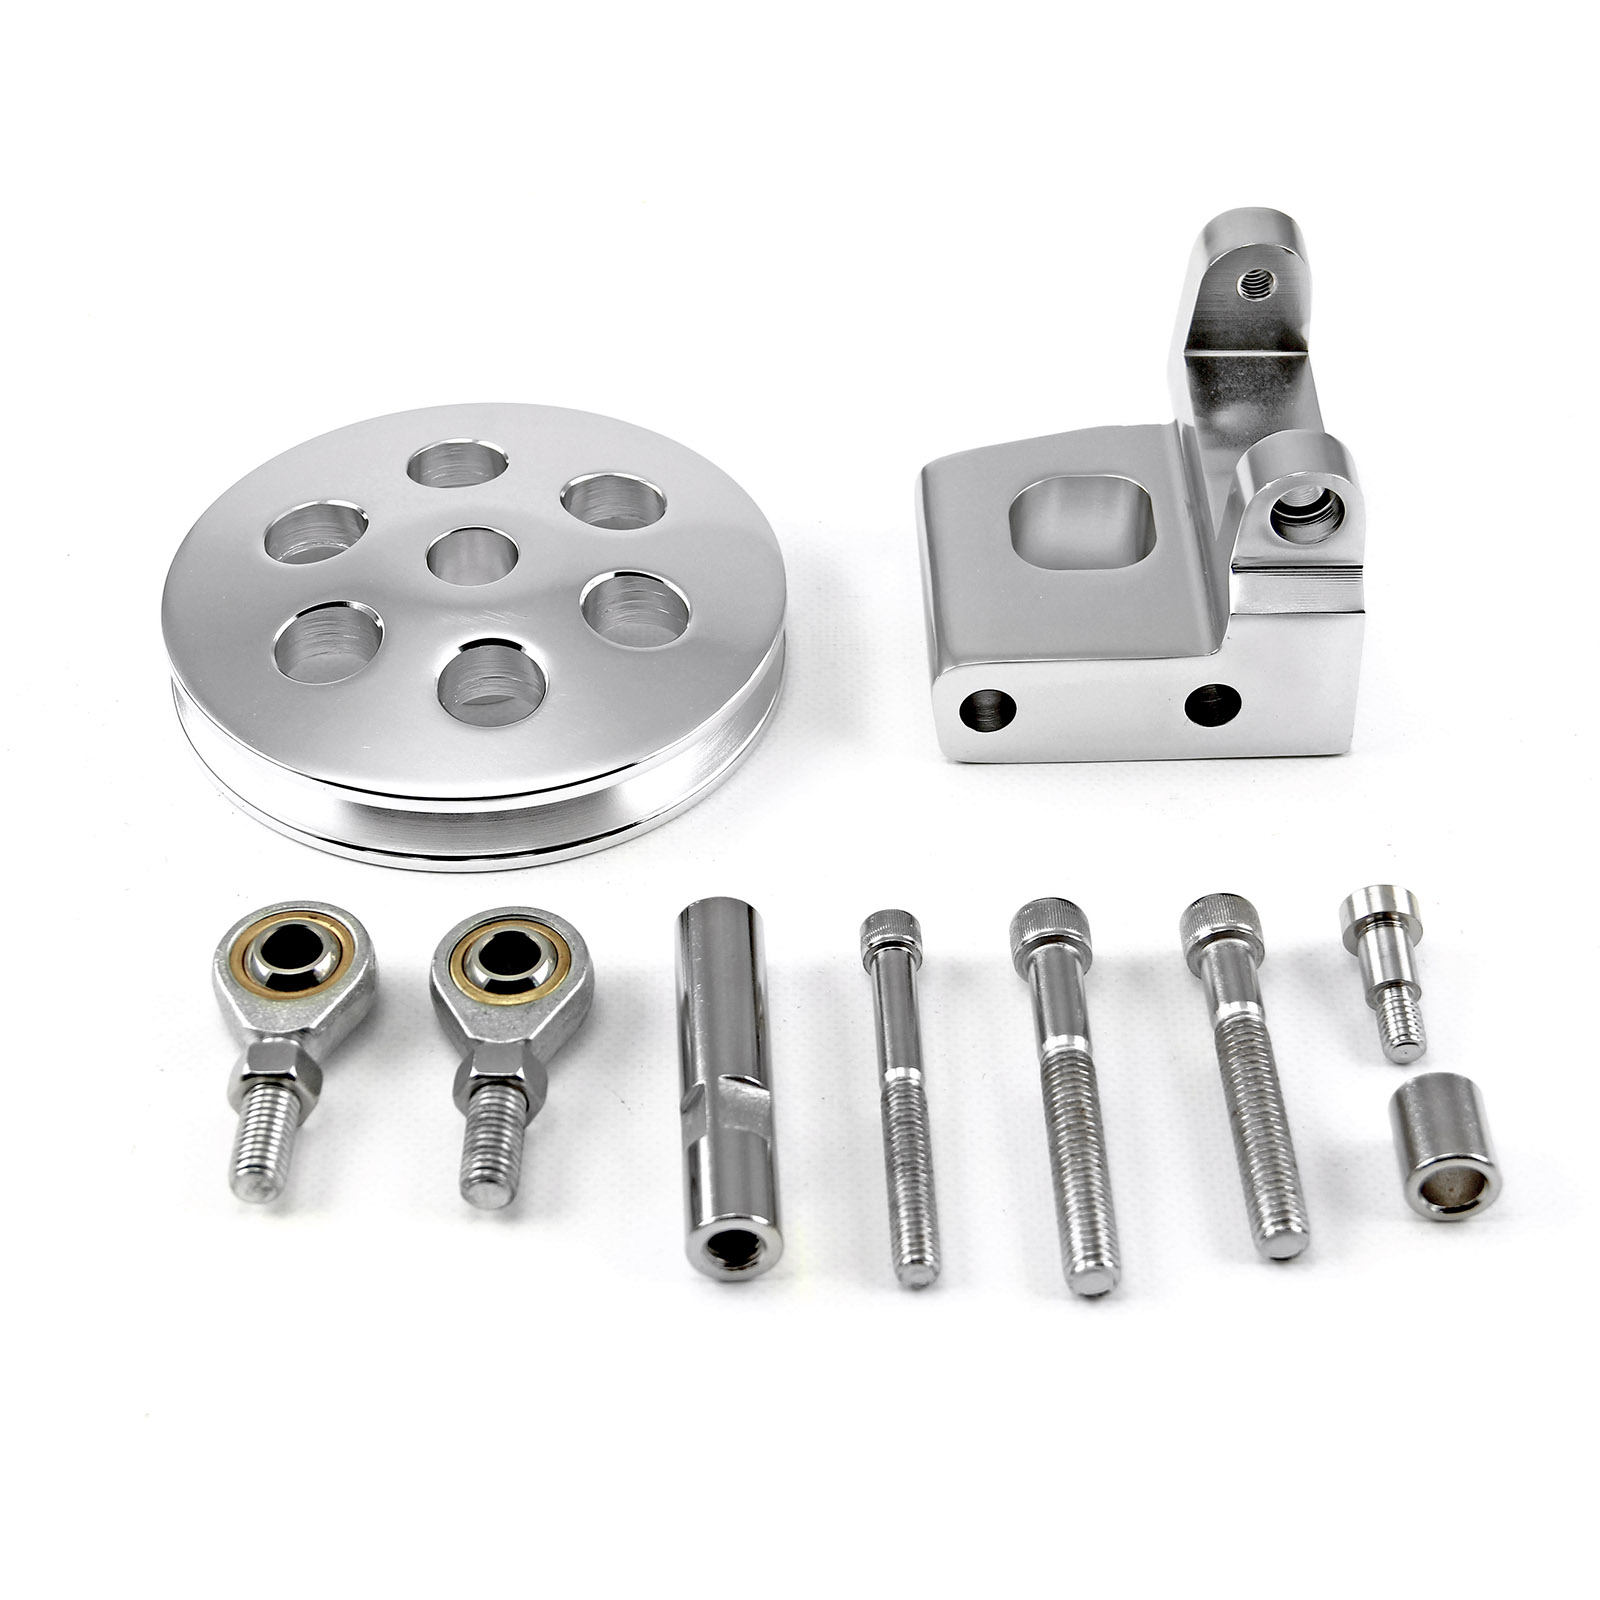 Chevy SBC 350 Type2 Billet Polished Aluminum Power Steering Bracket Kit w/Pulley